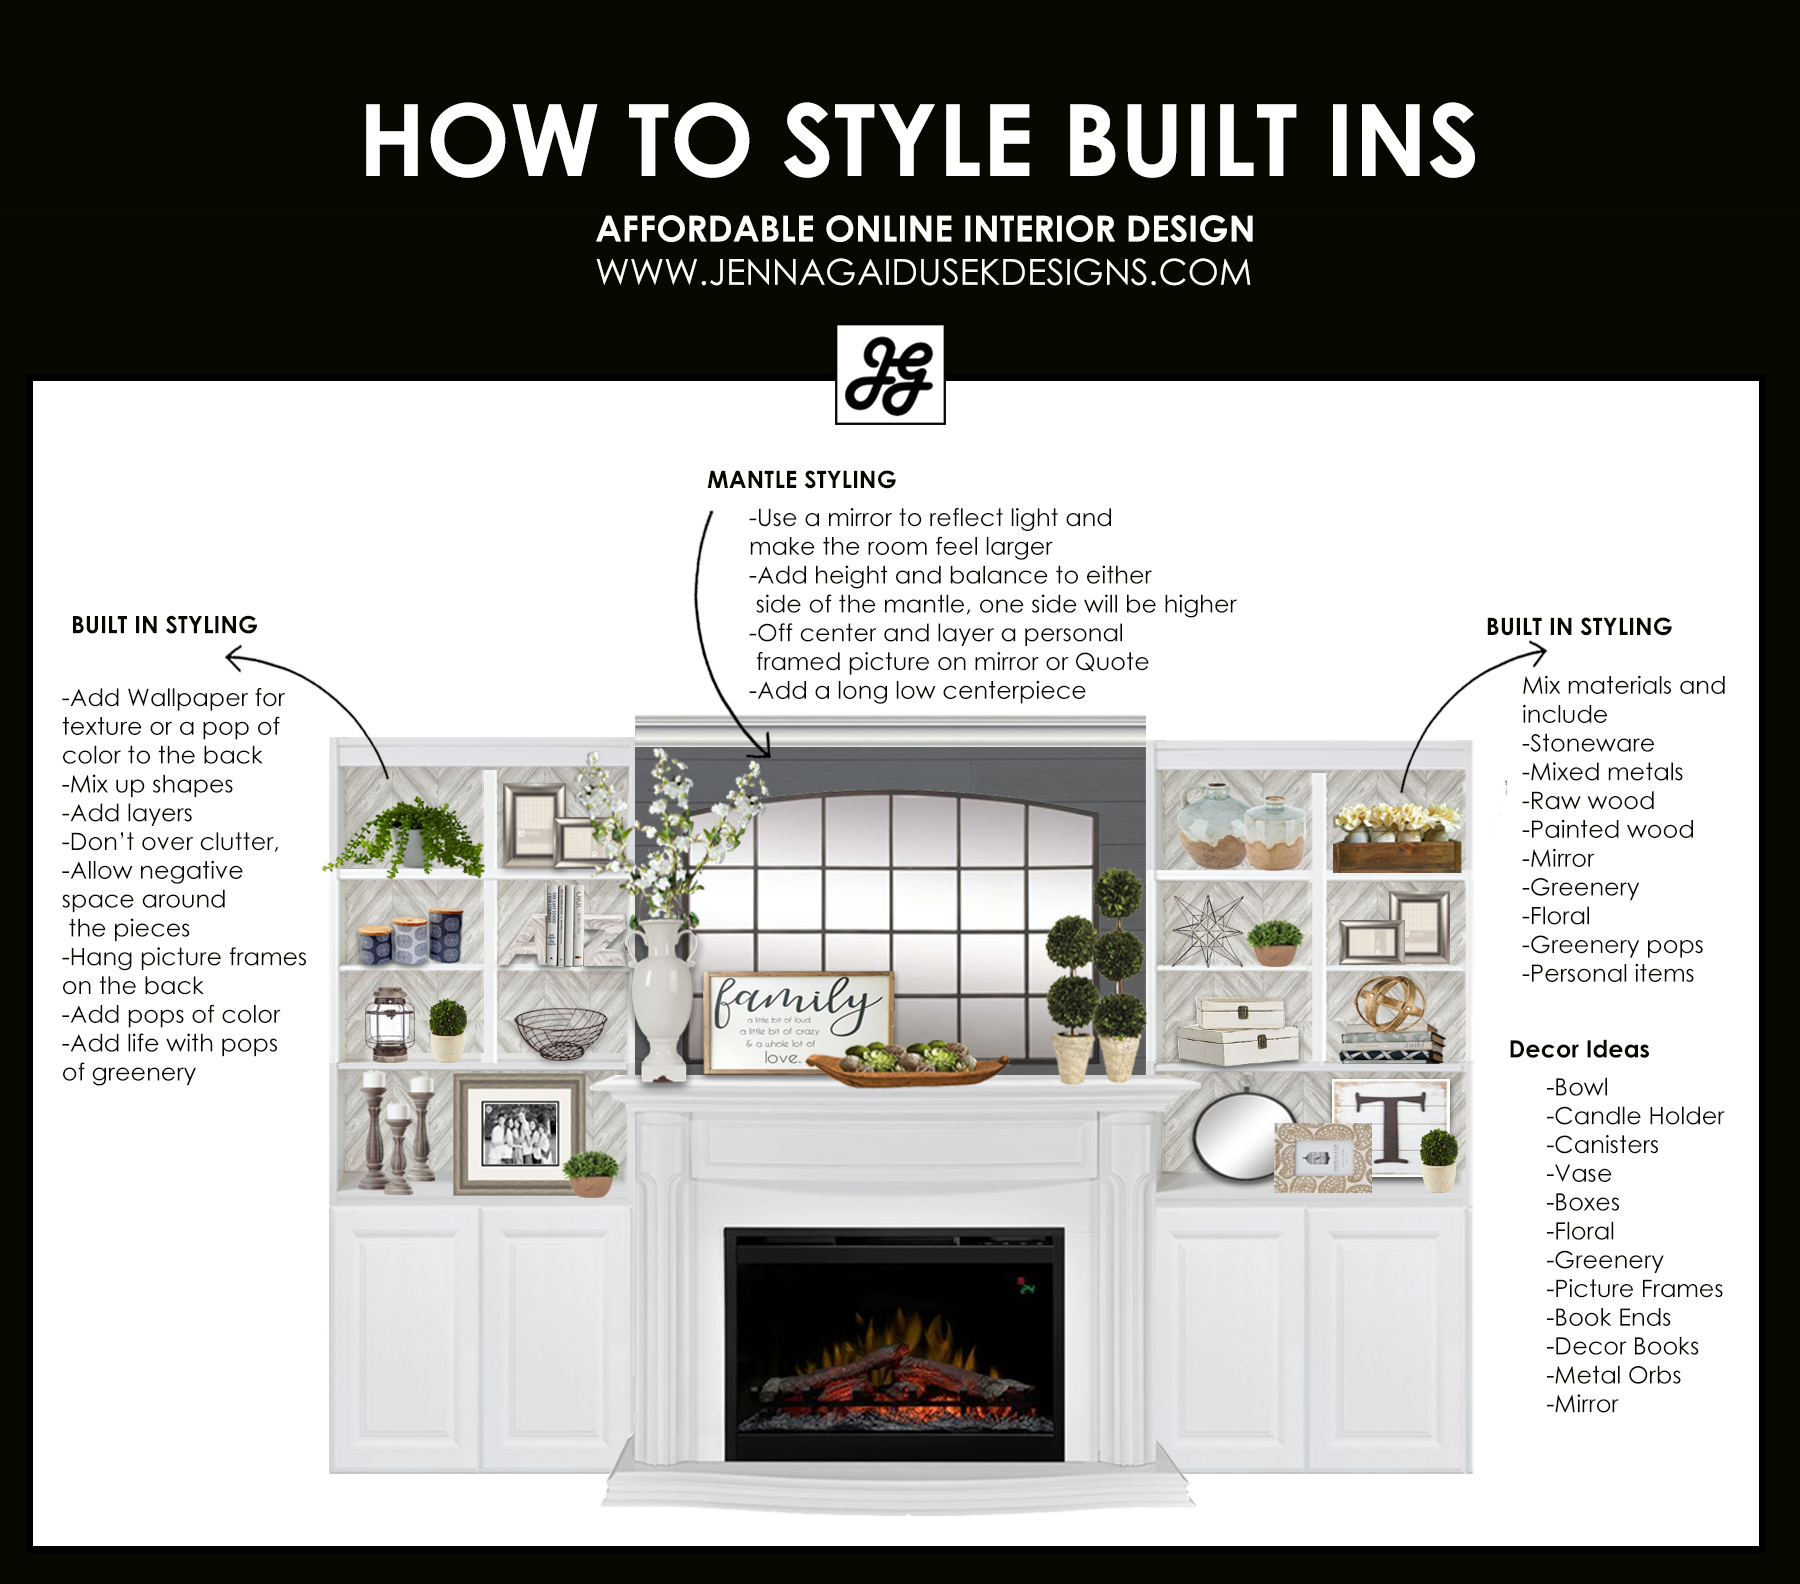 Free E Book How To Style Your Refined Farmhouse Subscribe Today Get The Complete When It Is Released Design Tips Advice Interior